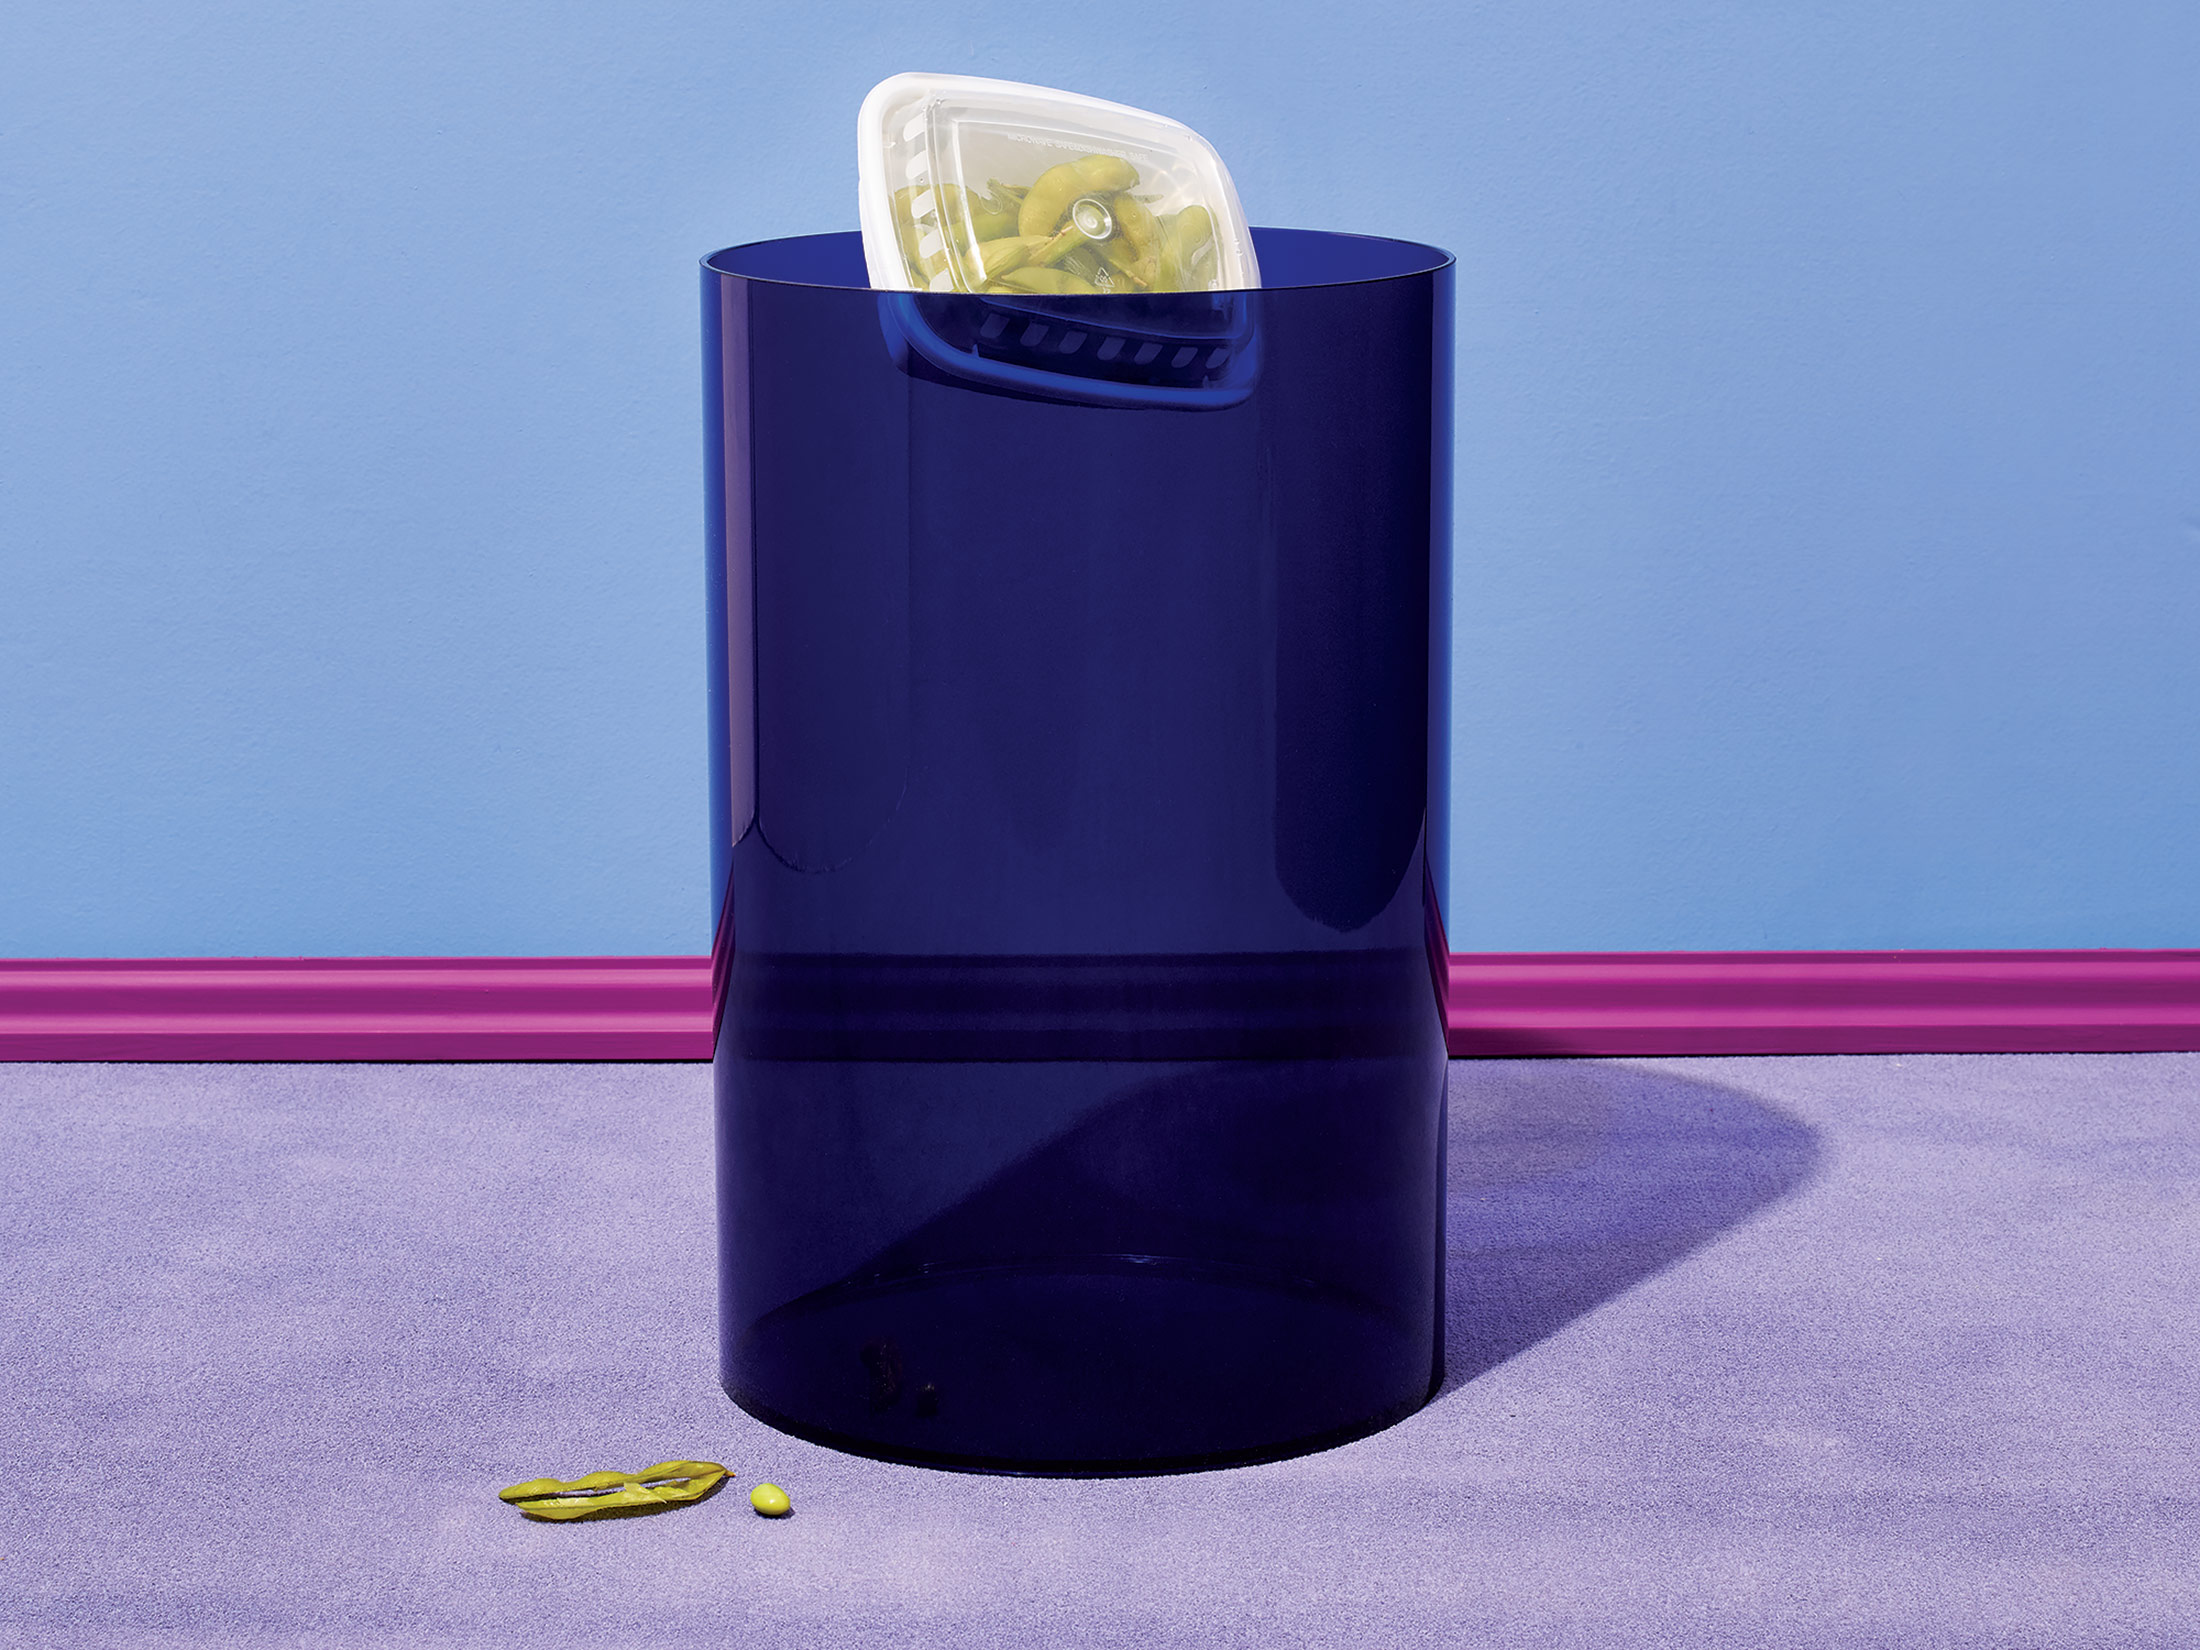 Waste basket by Gino Colombini for Kartell